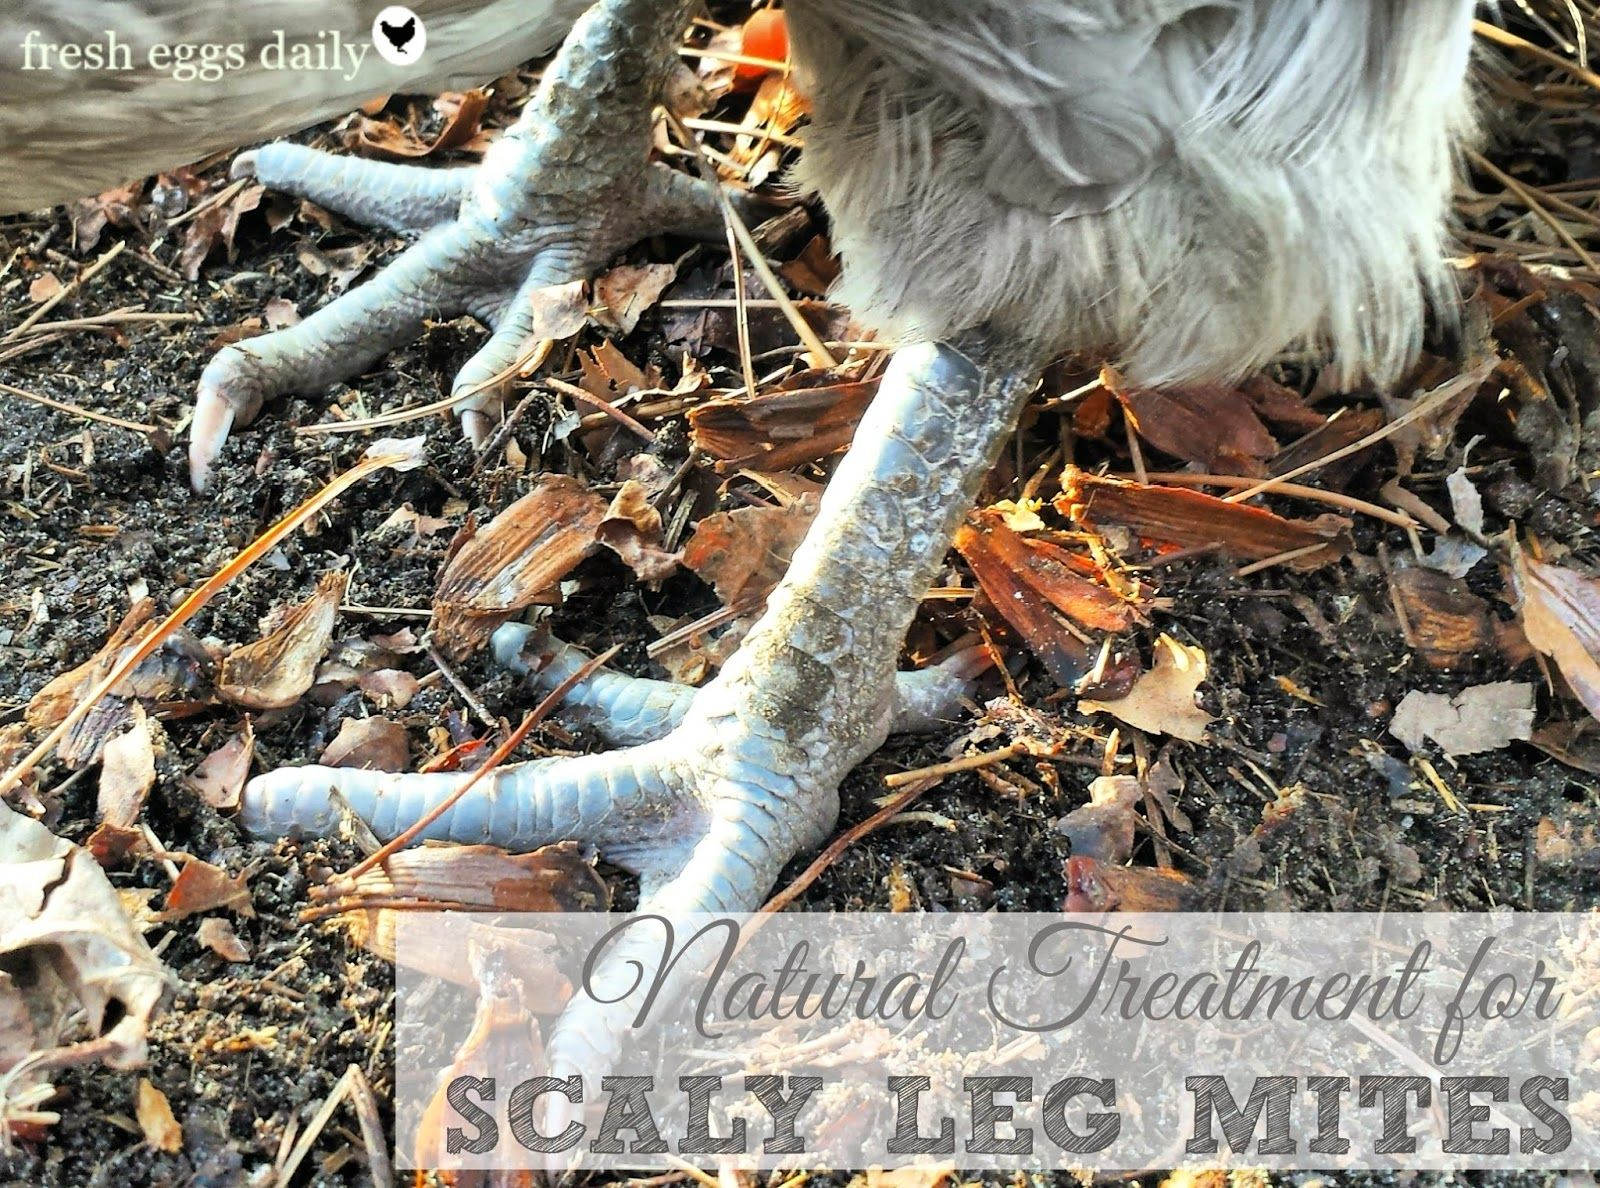 natural treatment for scaly leg mites on chickens everything